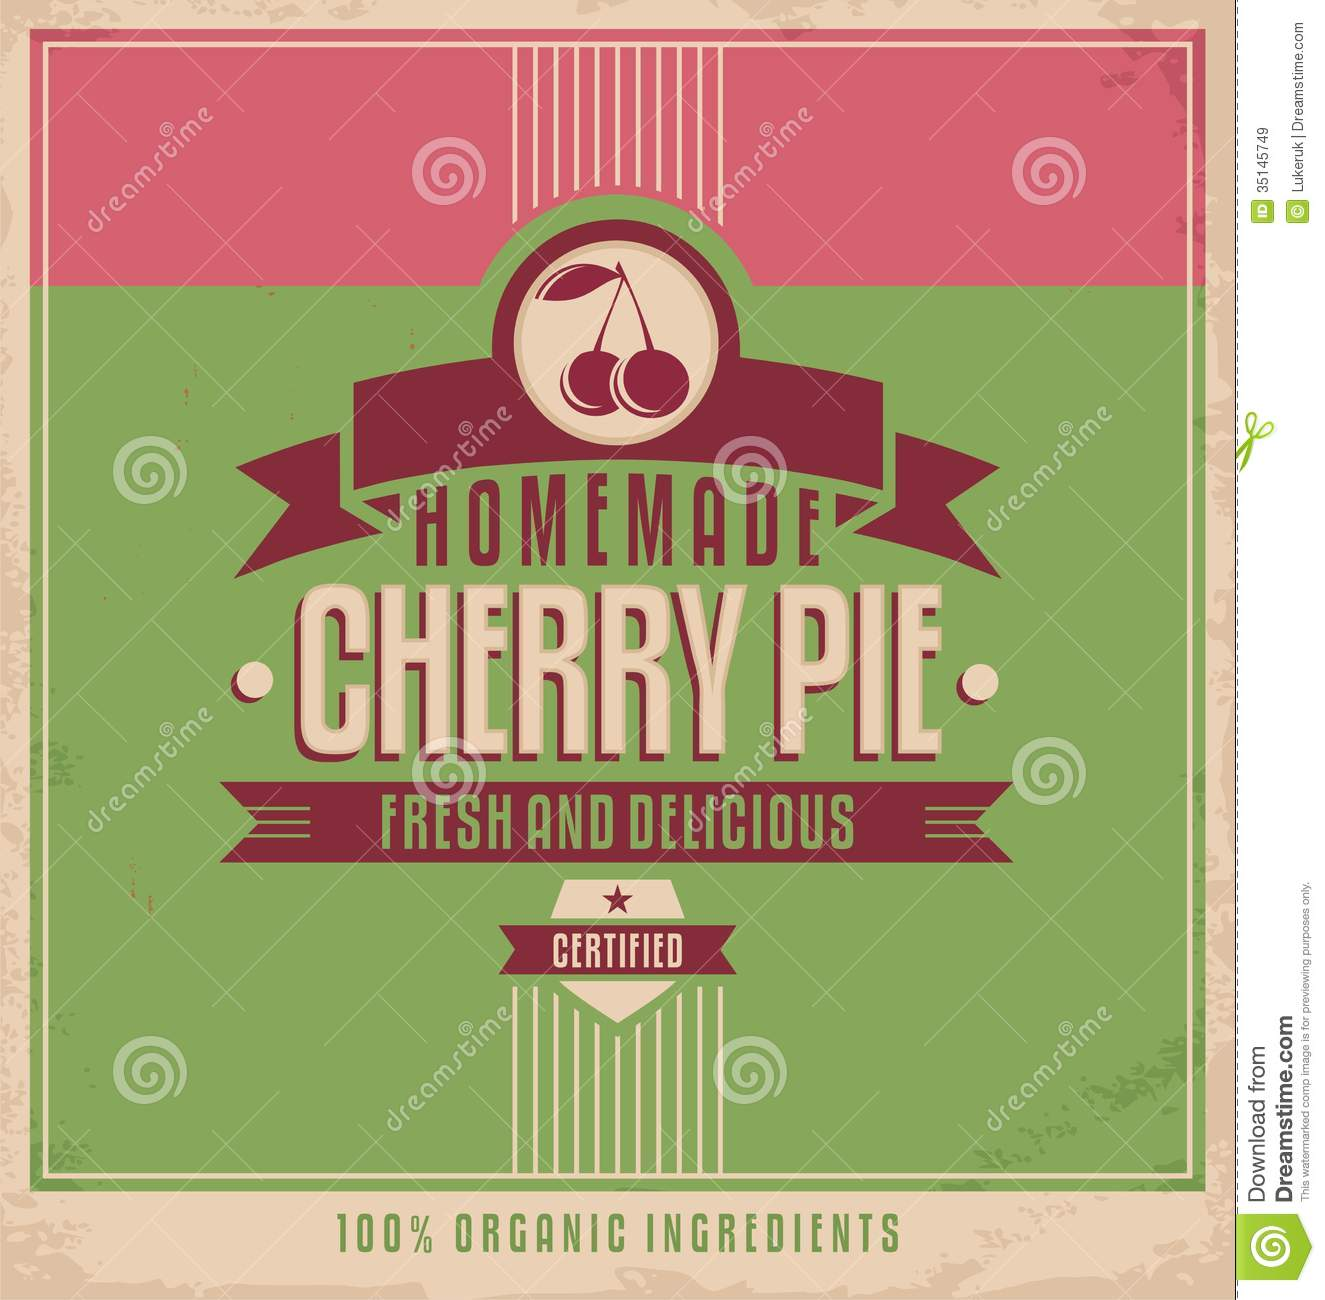 Vintage Poster Template For Cherry Pie Royalty Free Stock ...